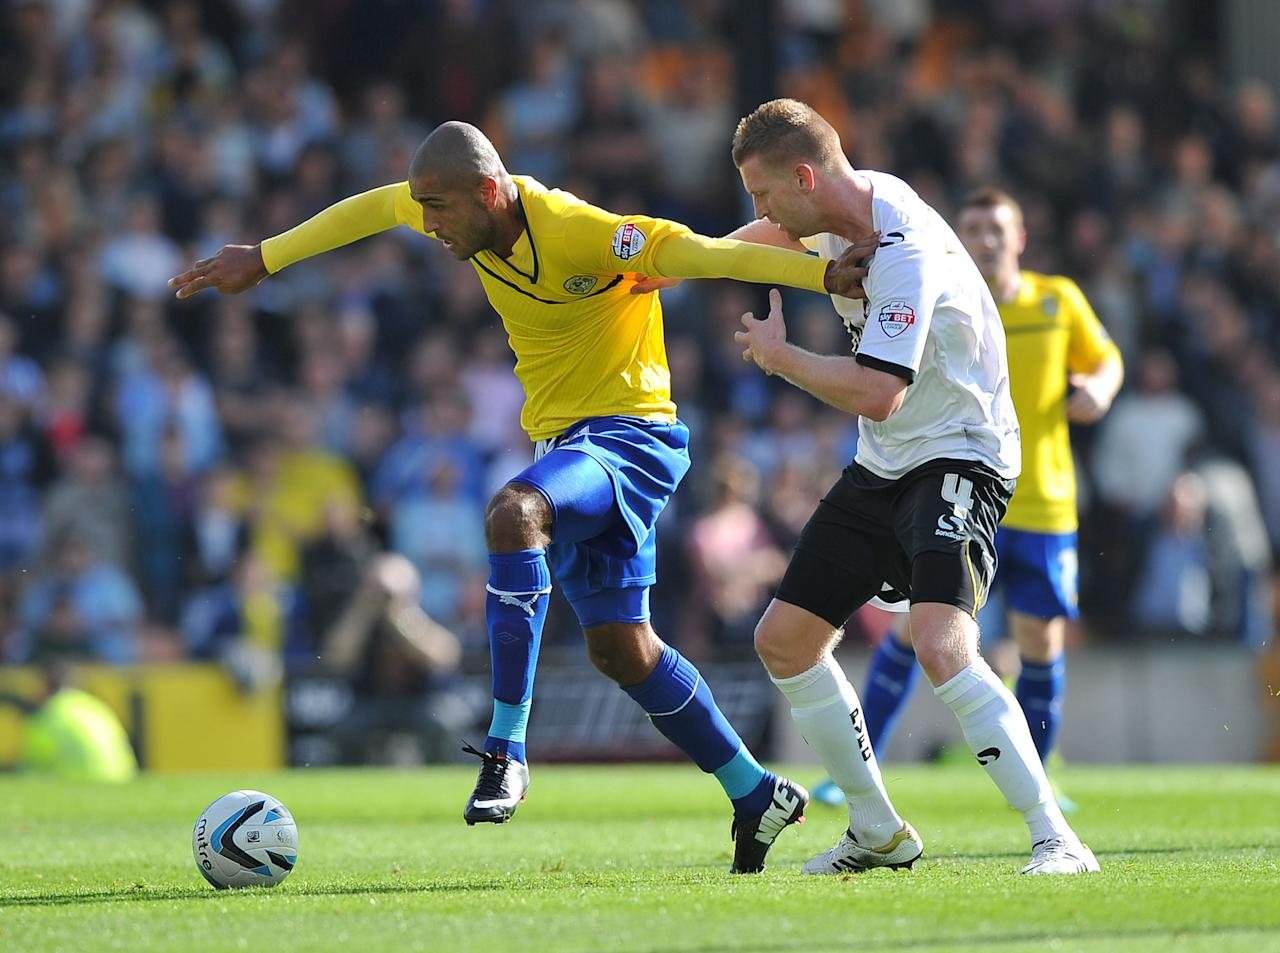 Coventry City's Leon Clarke (left) holds off Port Vale's Chris Robertson (right) during the Sky Bet League One match at Vale Park, Stoke.